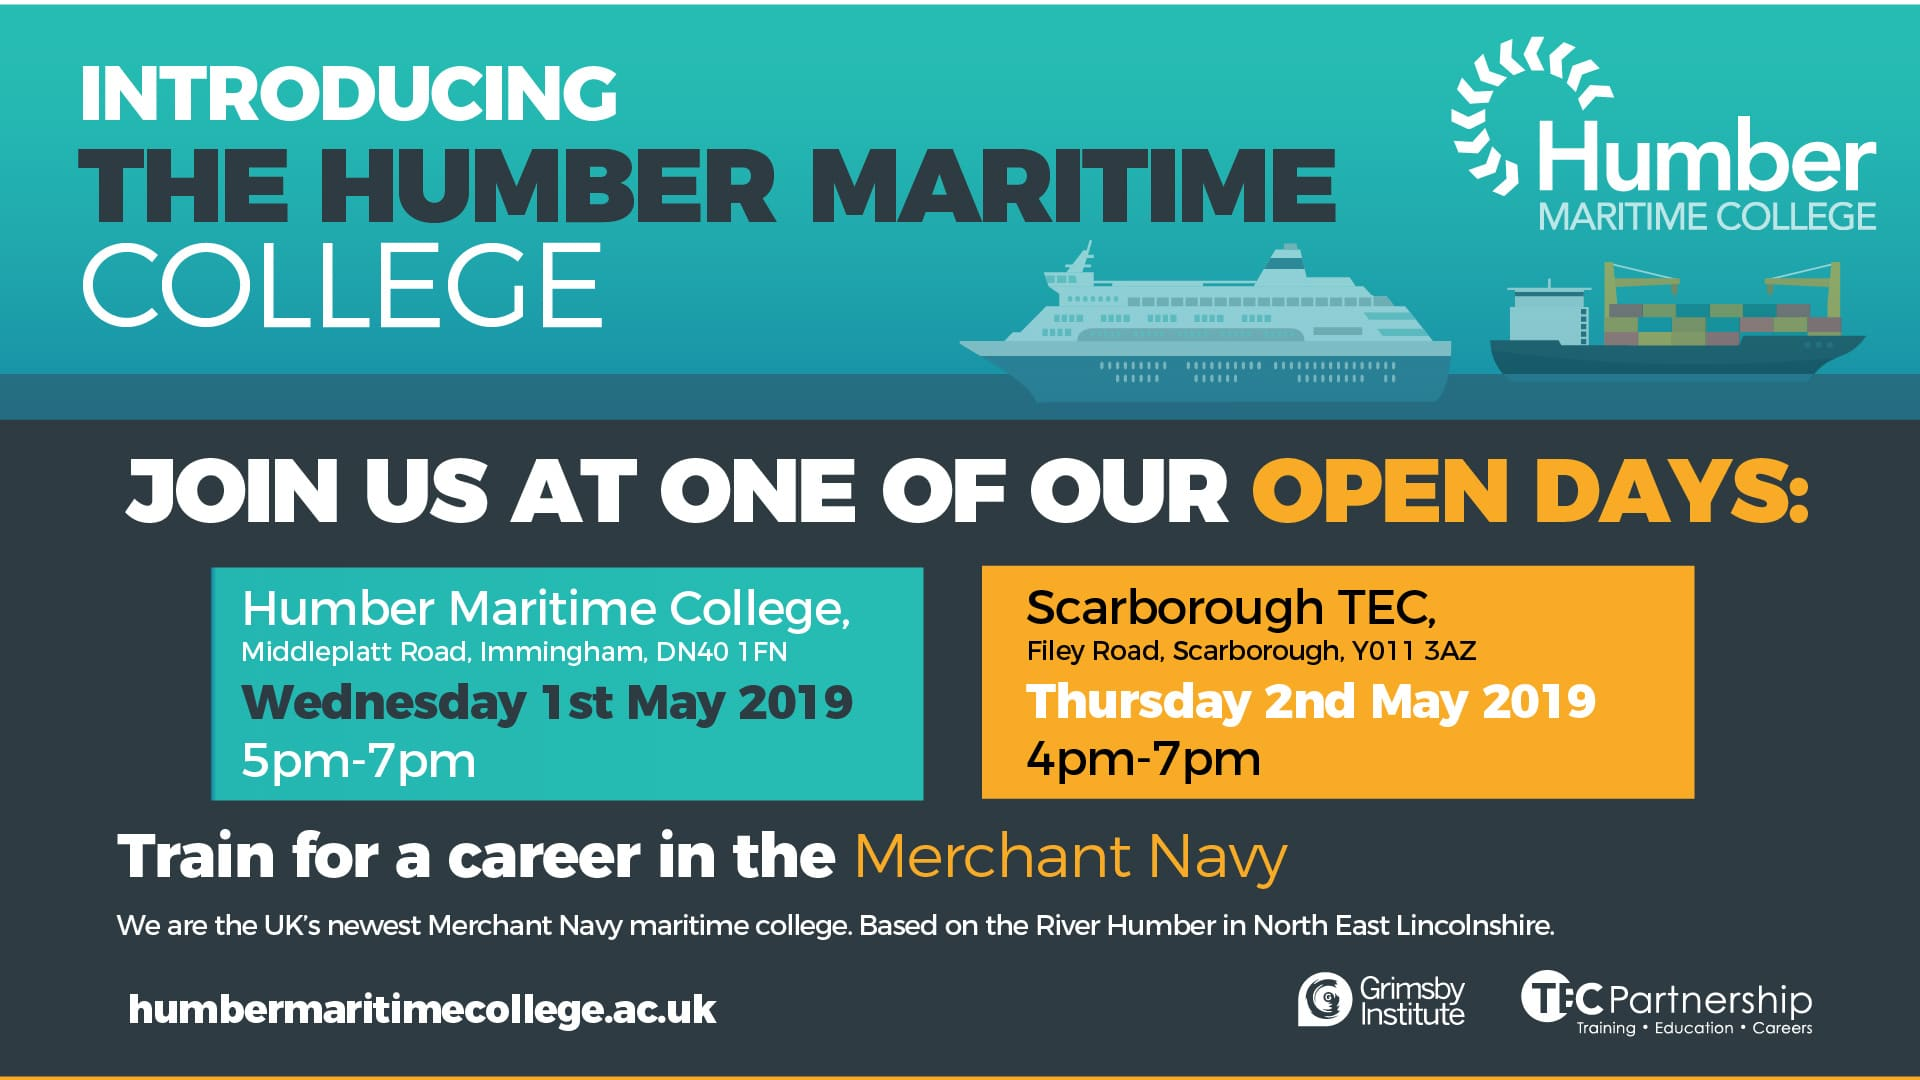 Humber Maritime College launched by MODAL Training | Scarborough TEC